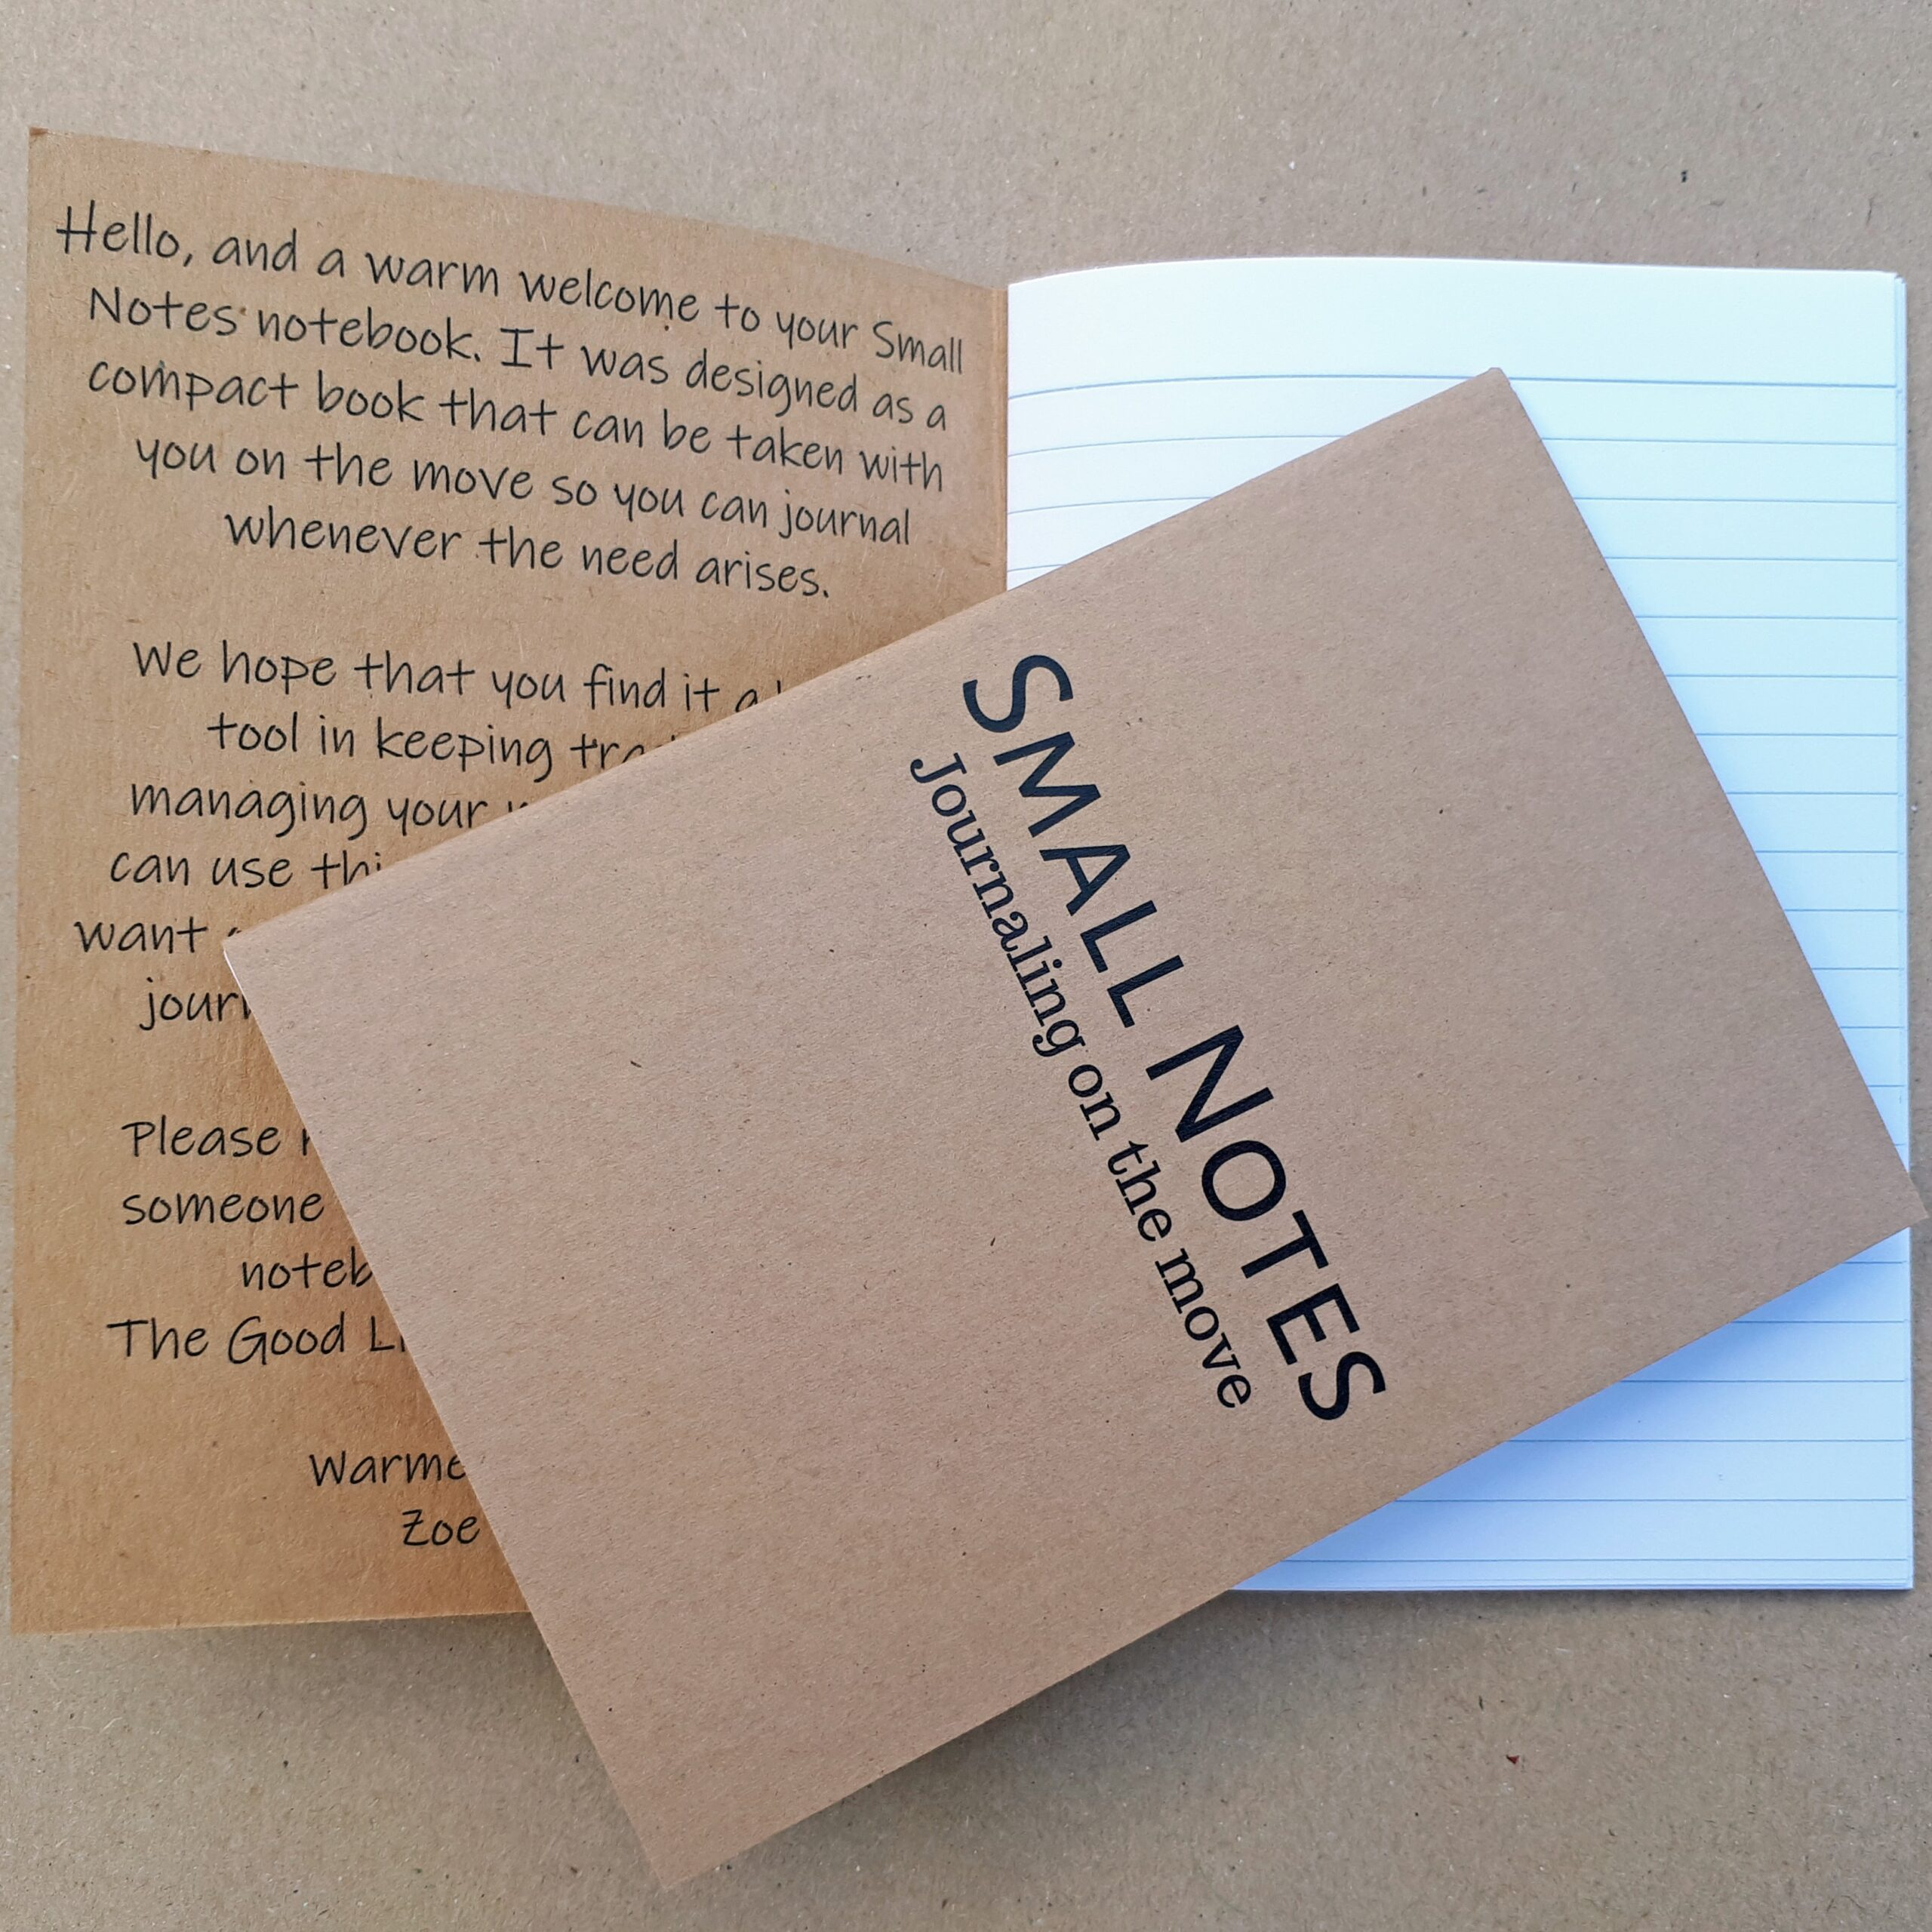 Small Notes Notebook